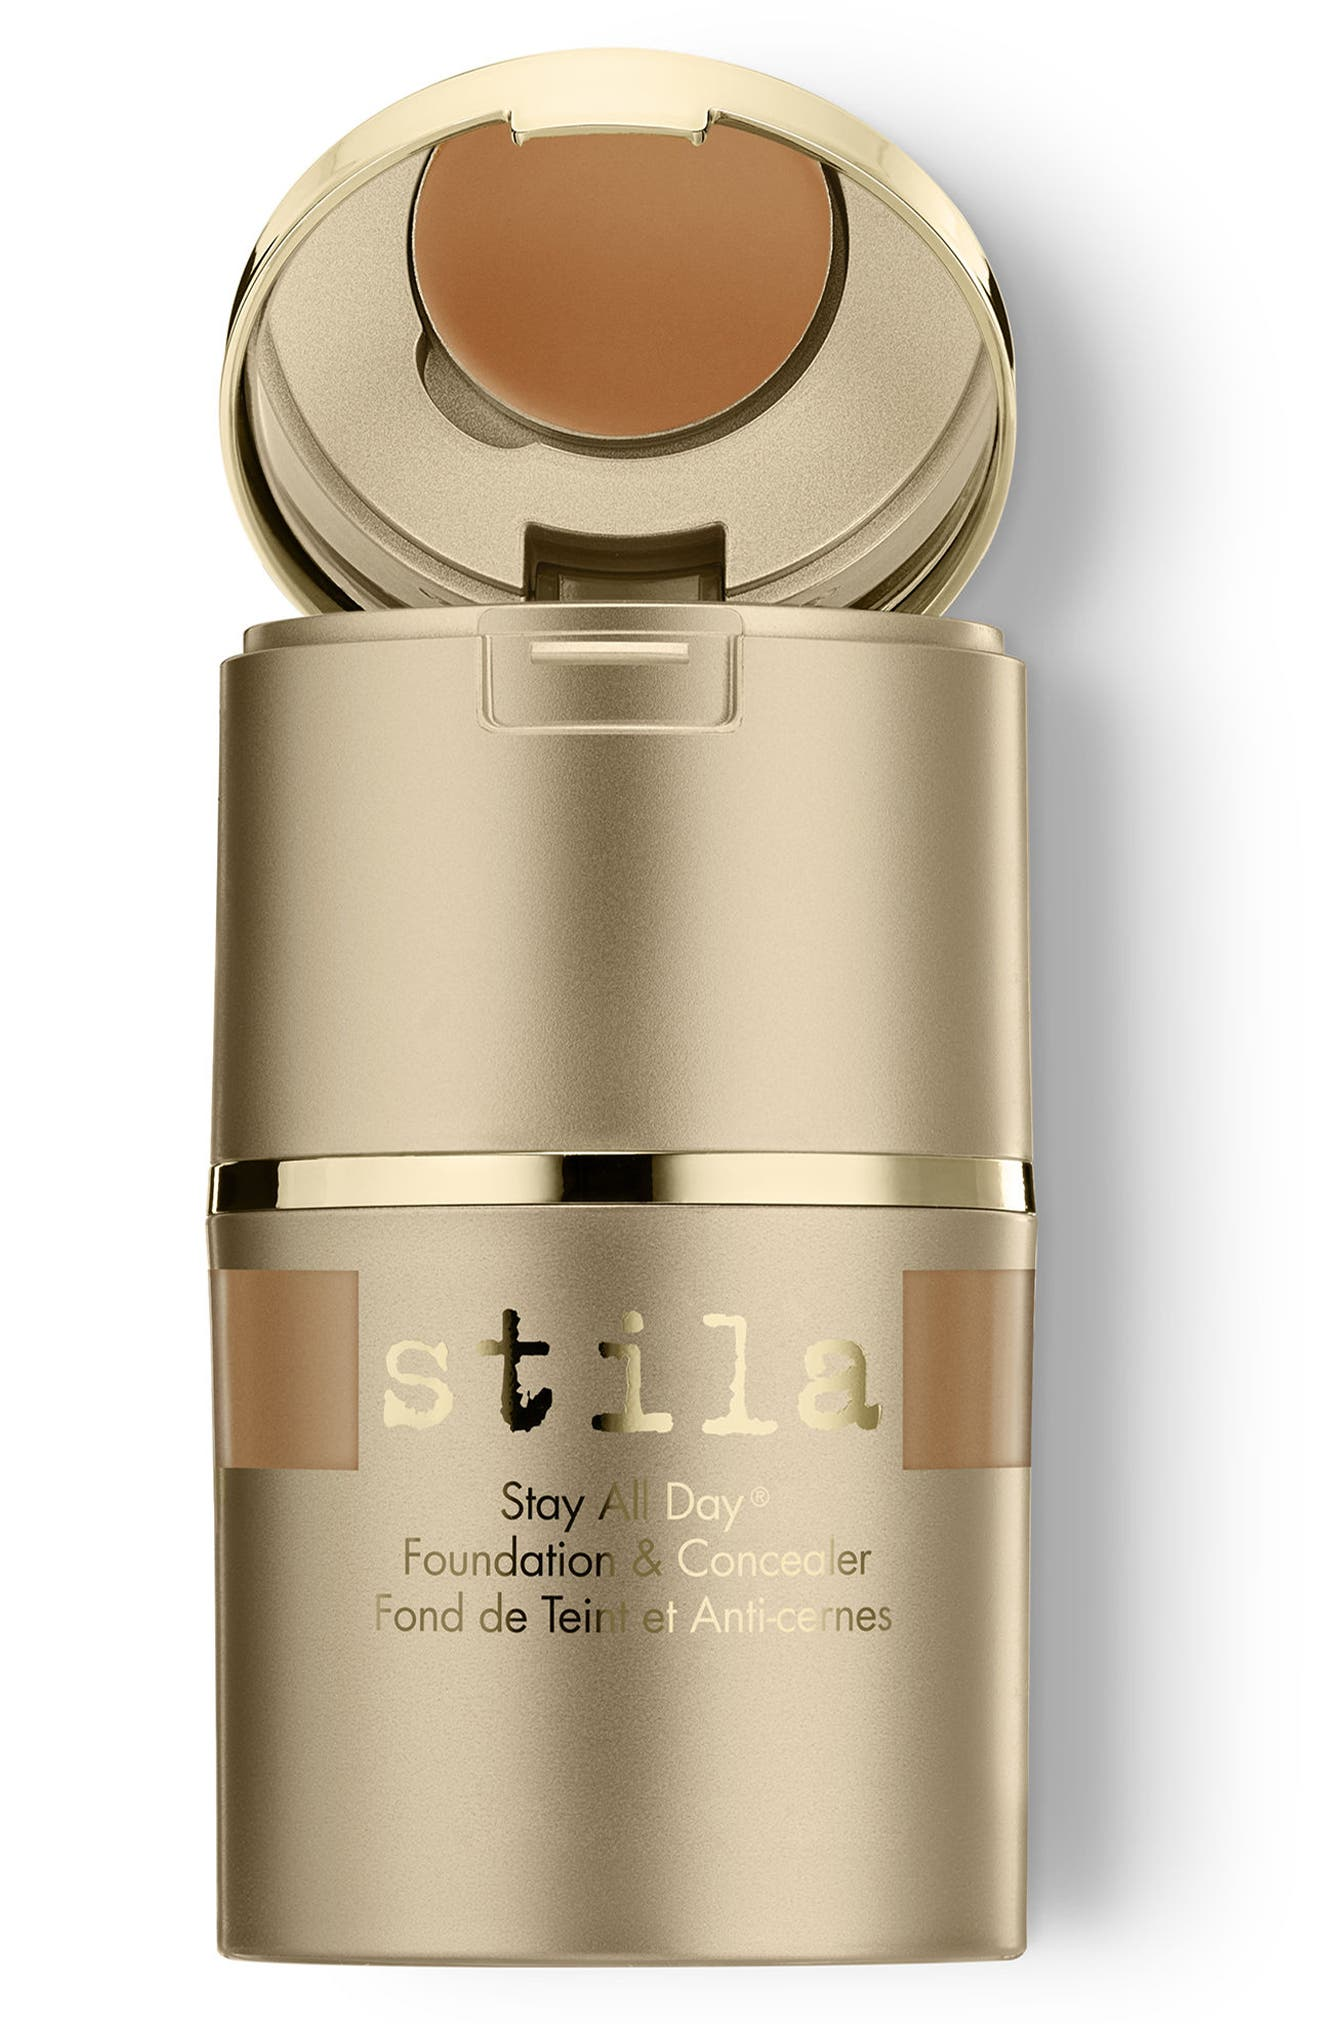 Stay All Day<sup>®</sup> Foundation & Concealer,                             Main thumbnail 1, color,                             STAY AD FOUND CONC CARAMEL 12